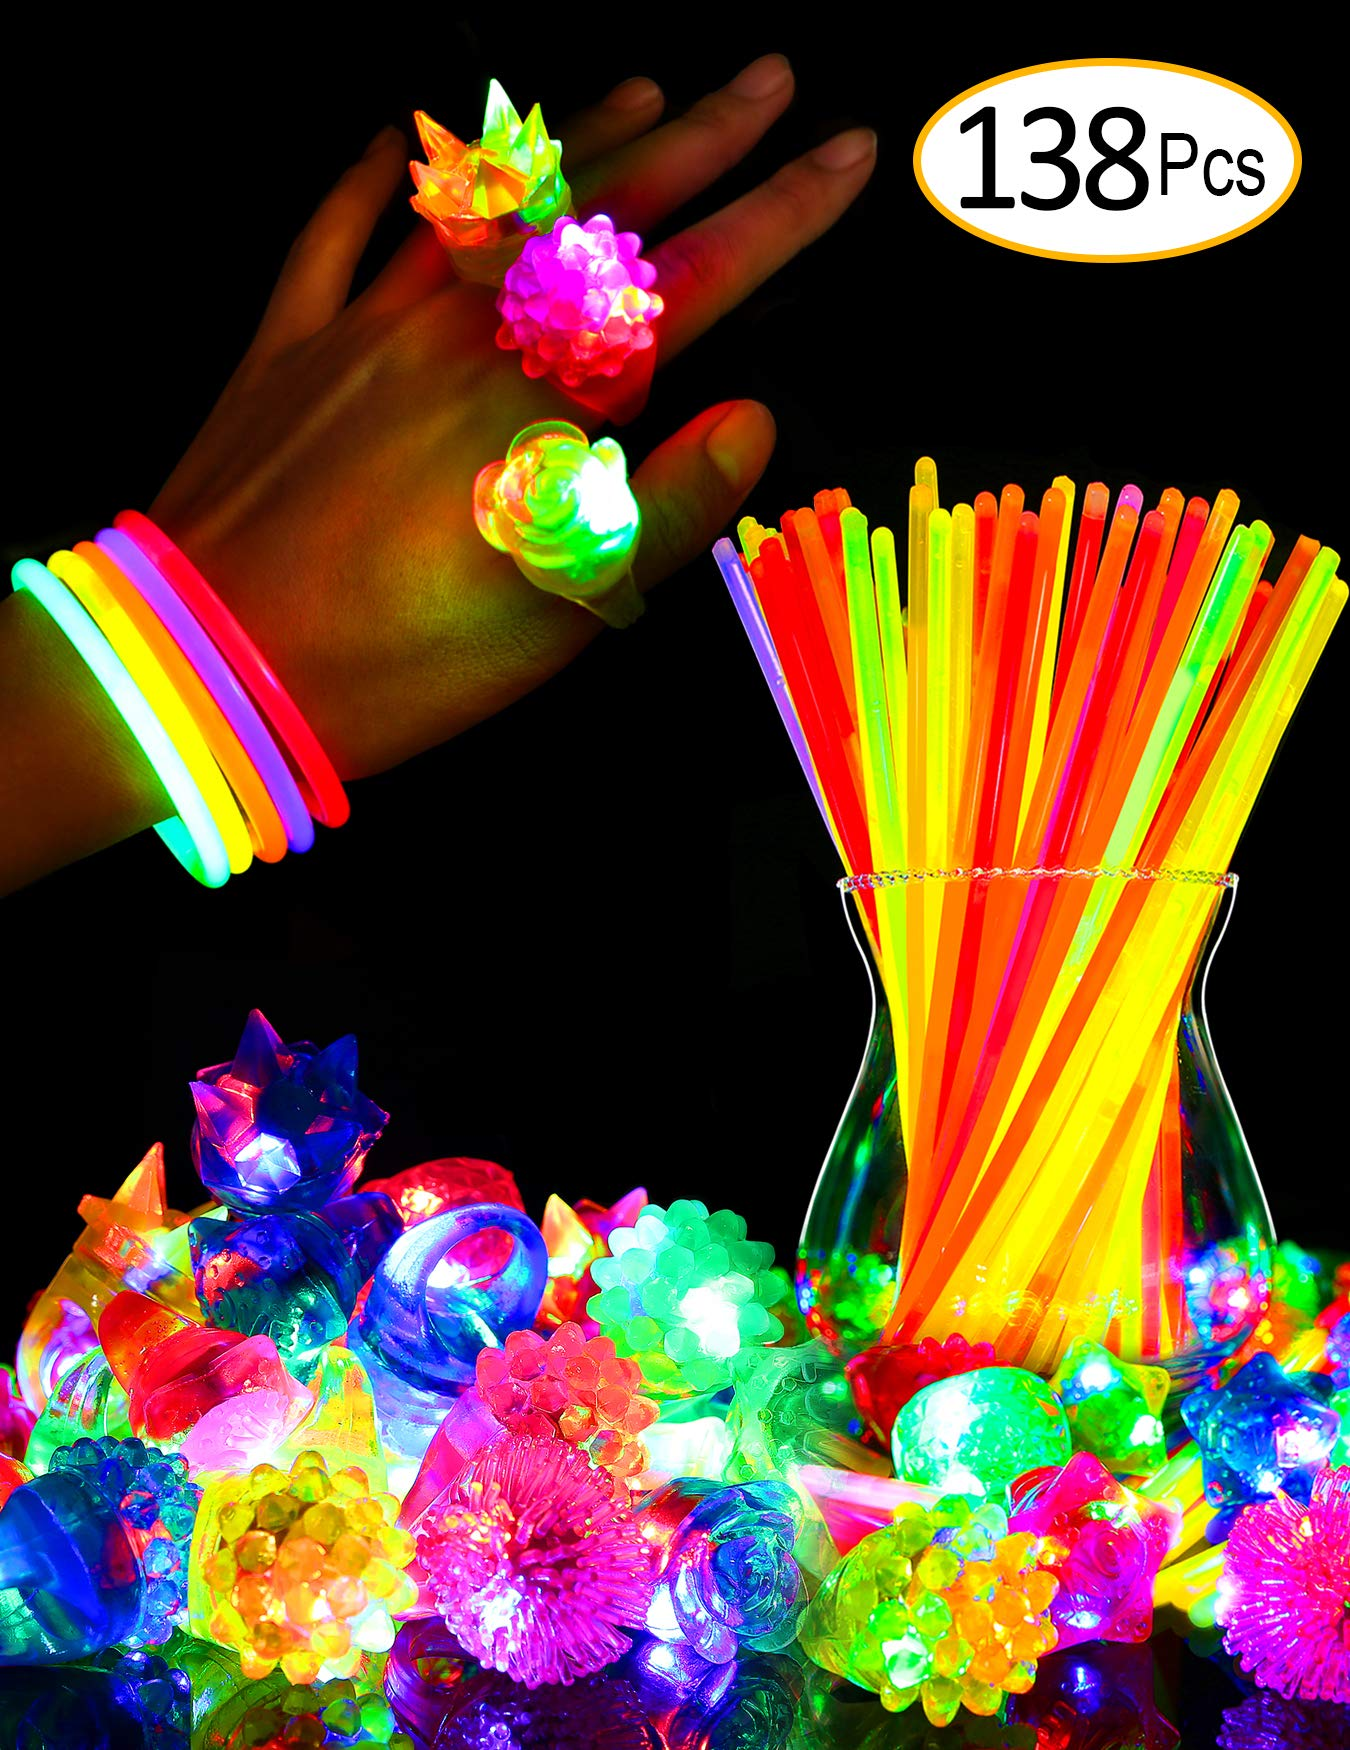 SIONE 138 Pack Glow Sticks Bulk Light Up Rings Party Favor for Kids Glow in The Dark Party Supplies 38 Flashing Glow Rings+100 Glow Sticks by SCIONE